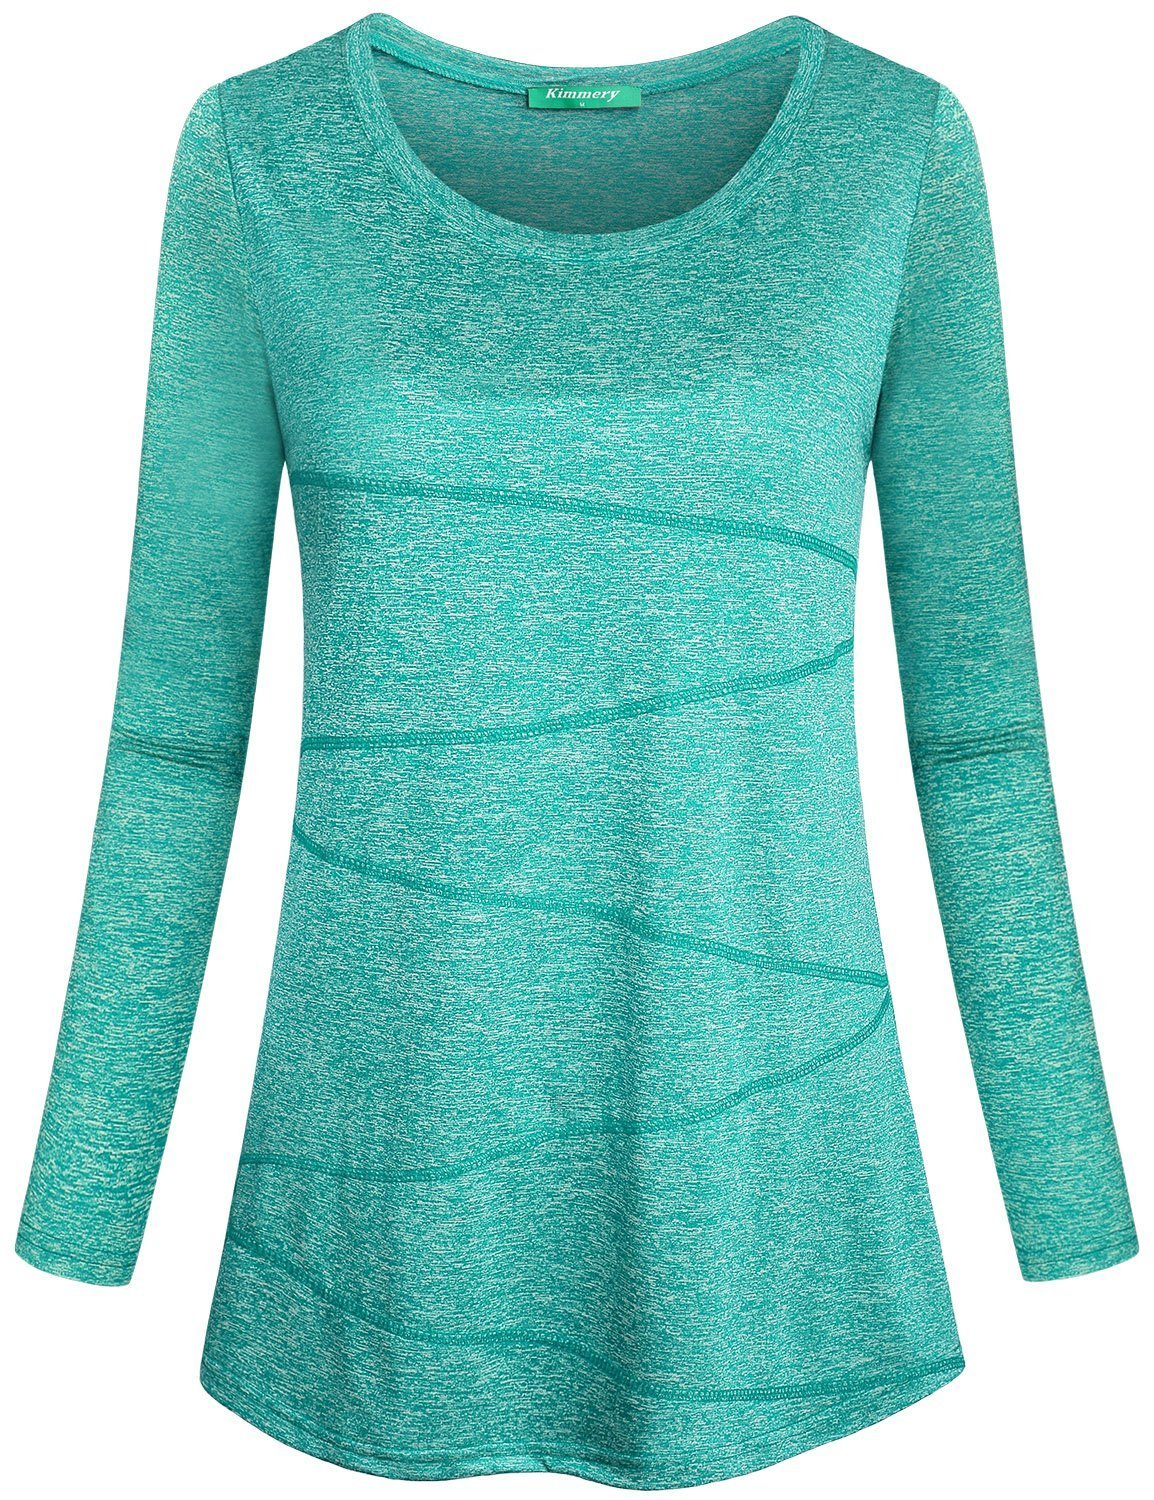 Kimmery Flattering Shirts for Women, Workout Tshirts Moisture-Wicking Loose Fit Tops Long Sleeve O Neck Easy Moving Lines Décor Sports Wear for Spring Autumn Light Green X Large by Kimmery